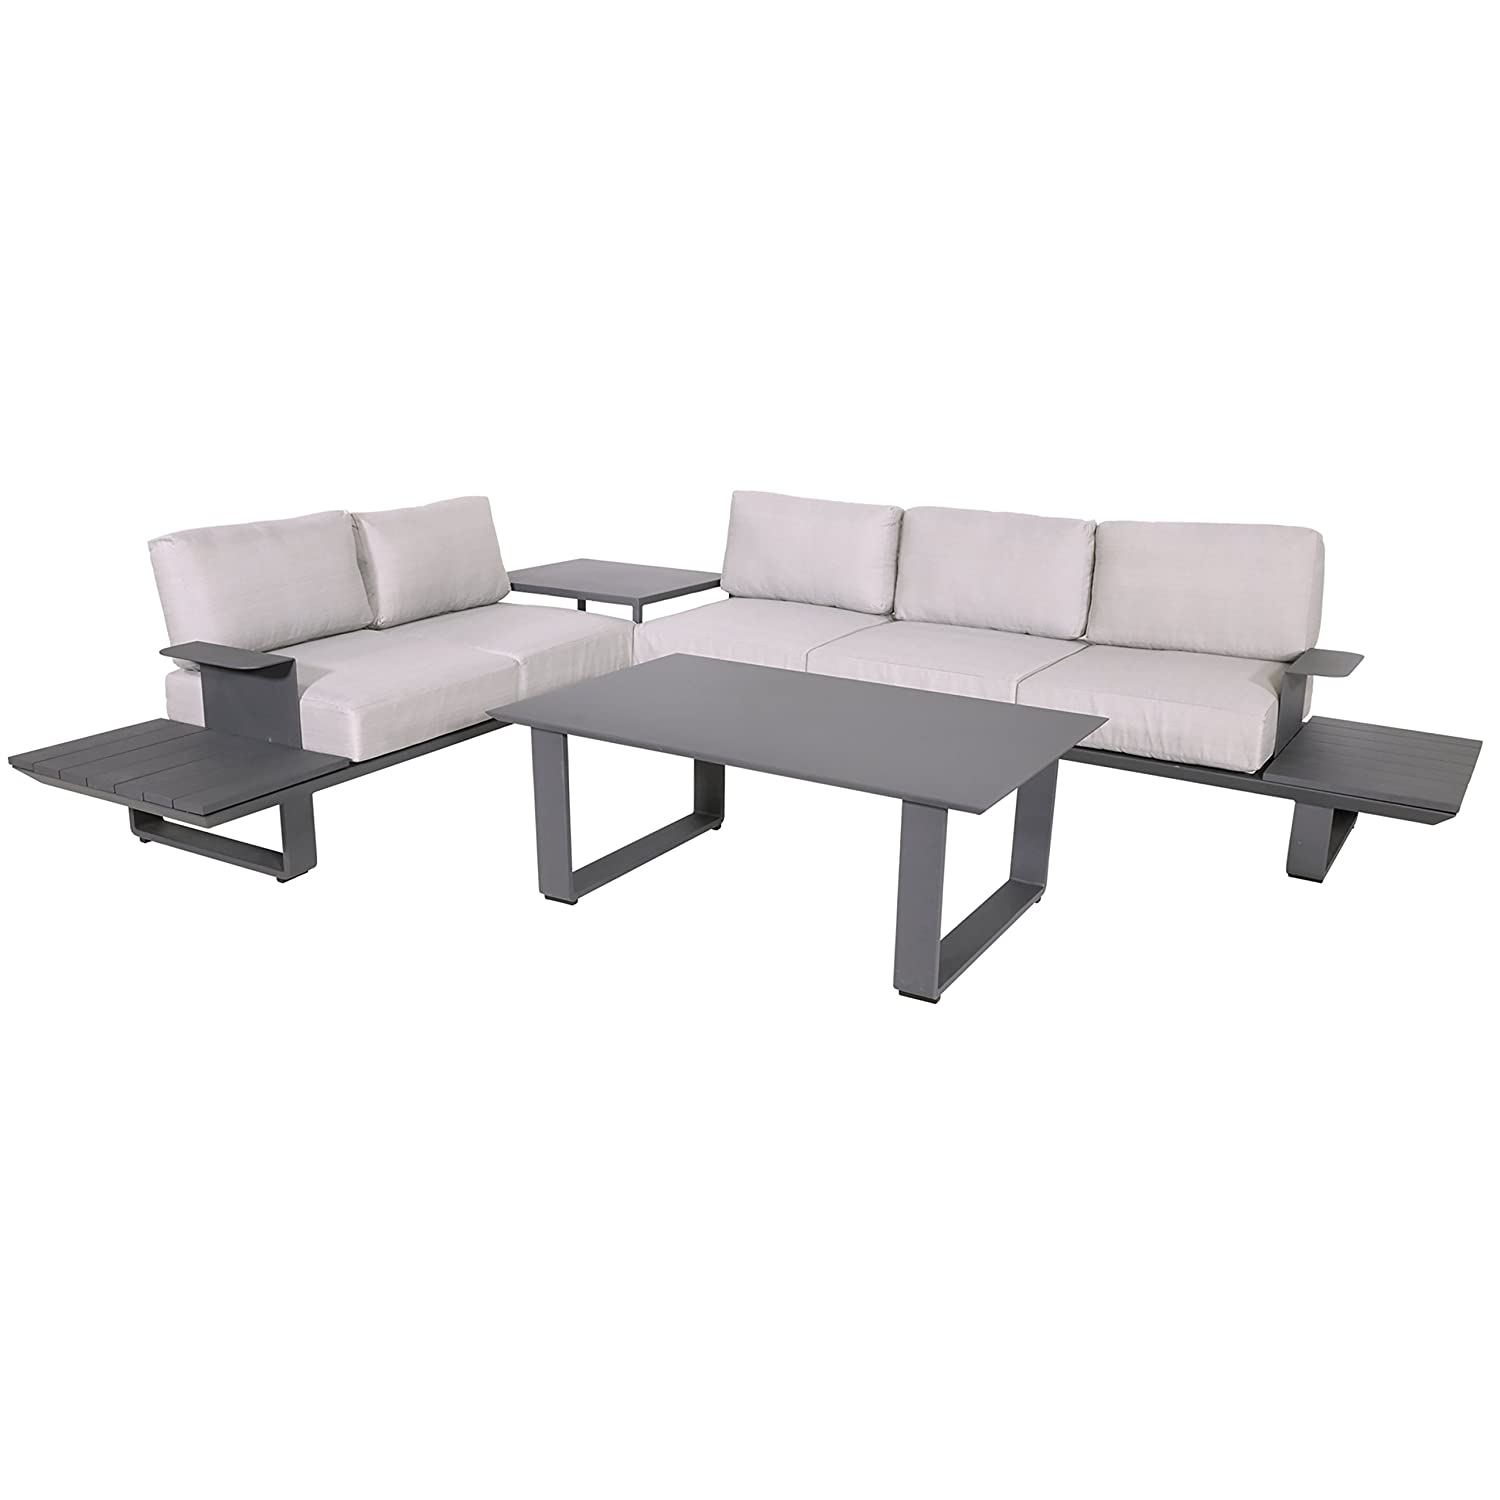 lounge eckbank garten lounge set mit tisch espressi rock modern g nstig online kaufen. Black Bedroom Furniture Sets. Home Design Ideas